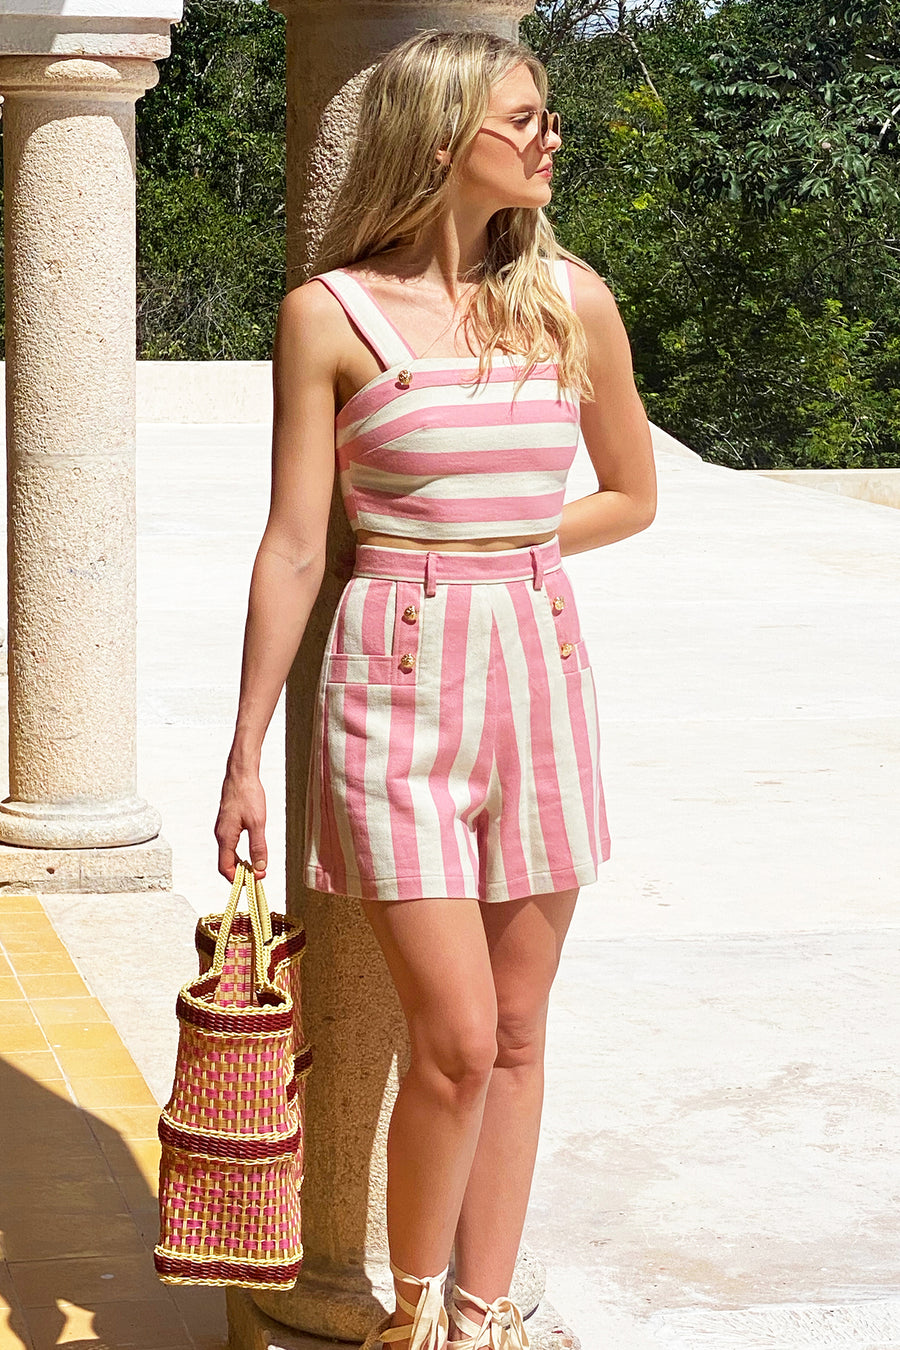 This is a photo of a woman wearing a matching two-piece suit with shorts and a cropped top,. The outfit is pink and neutral thick stripes with gold buttons. She leans against a cement post.